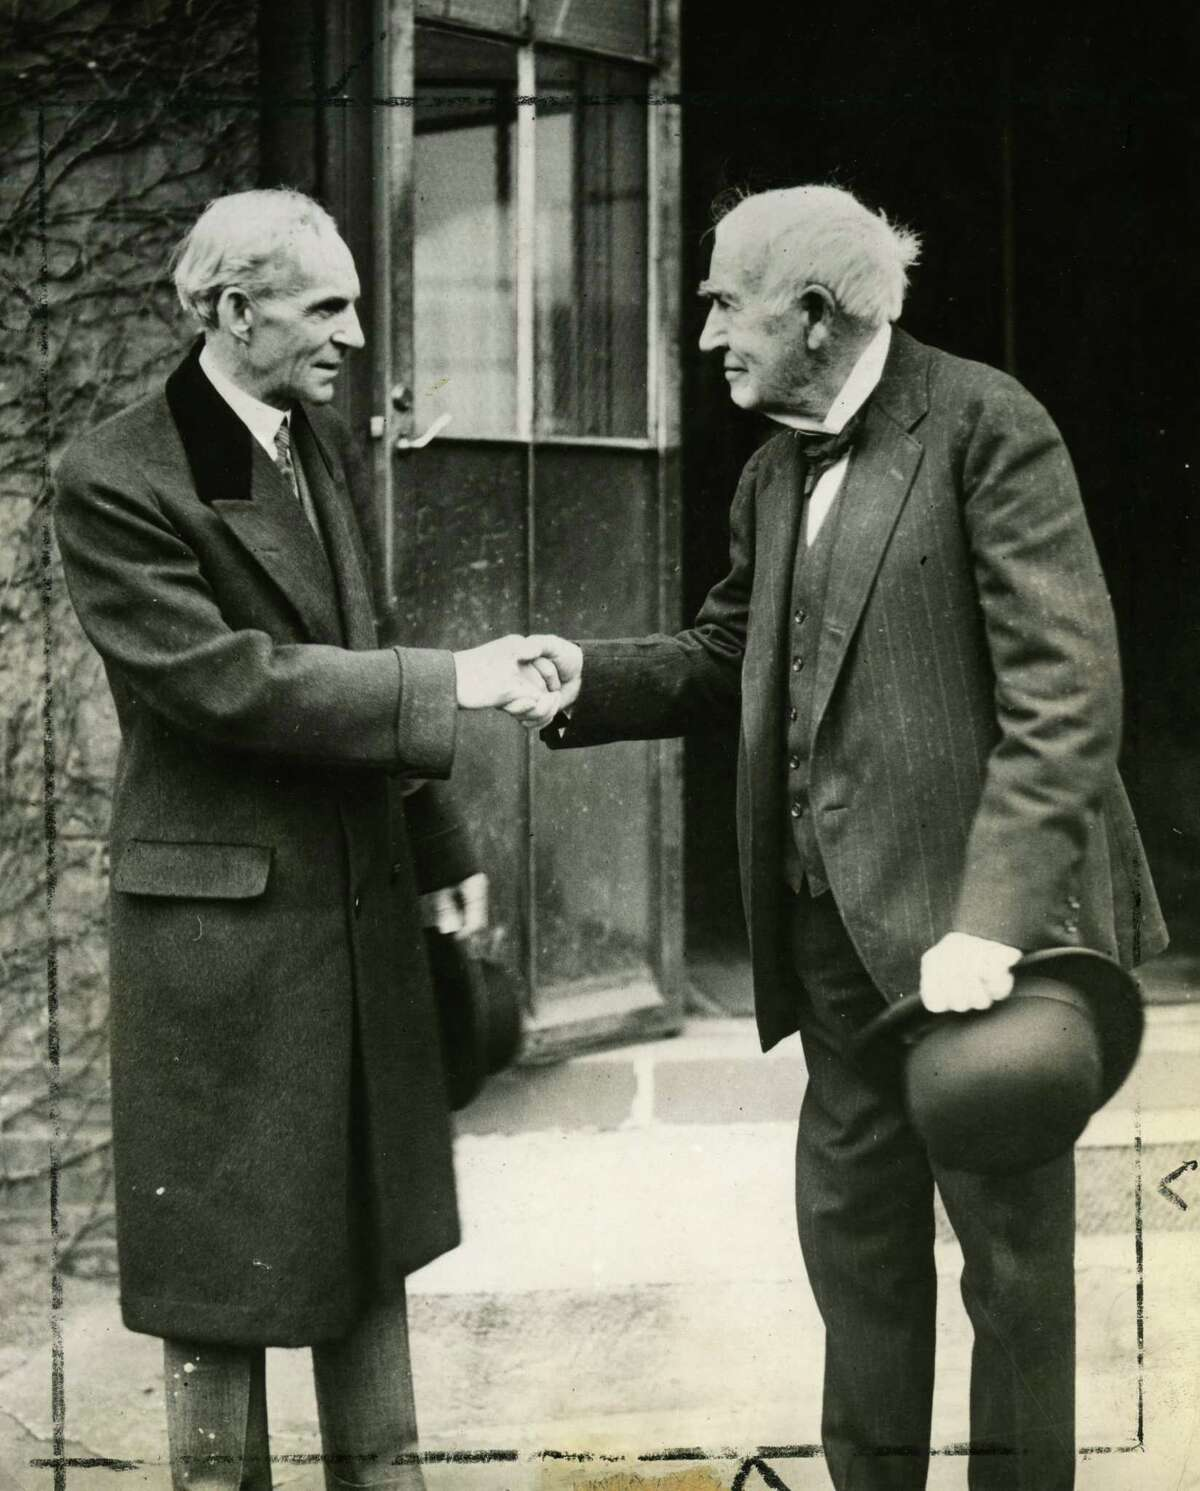 Thomas Edison, right, and Henry Ford shake hands, ca. 1920s. (Wide World Photo/Times Union archive print)